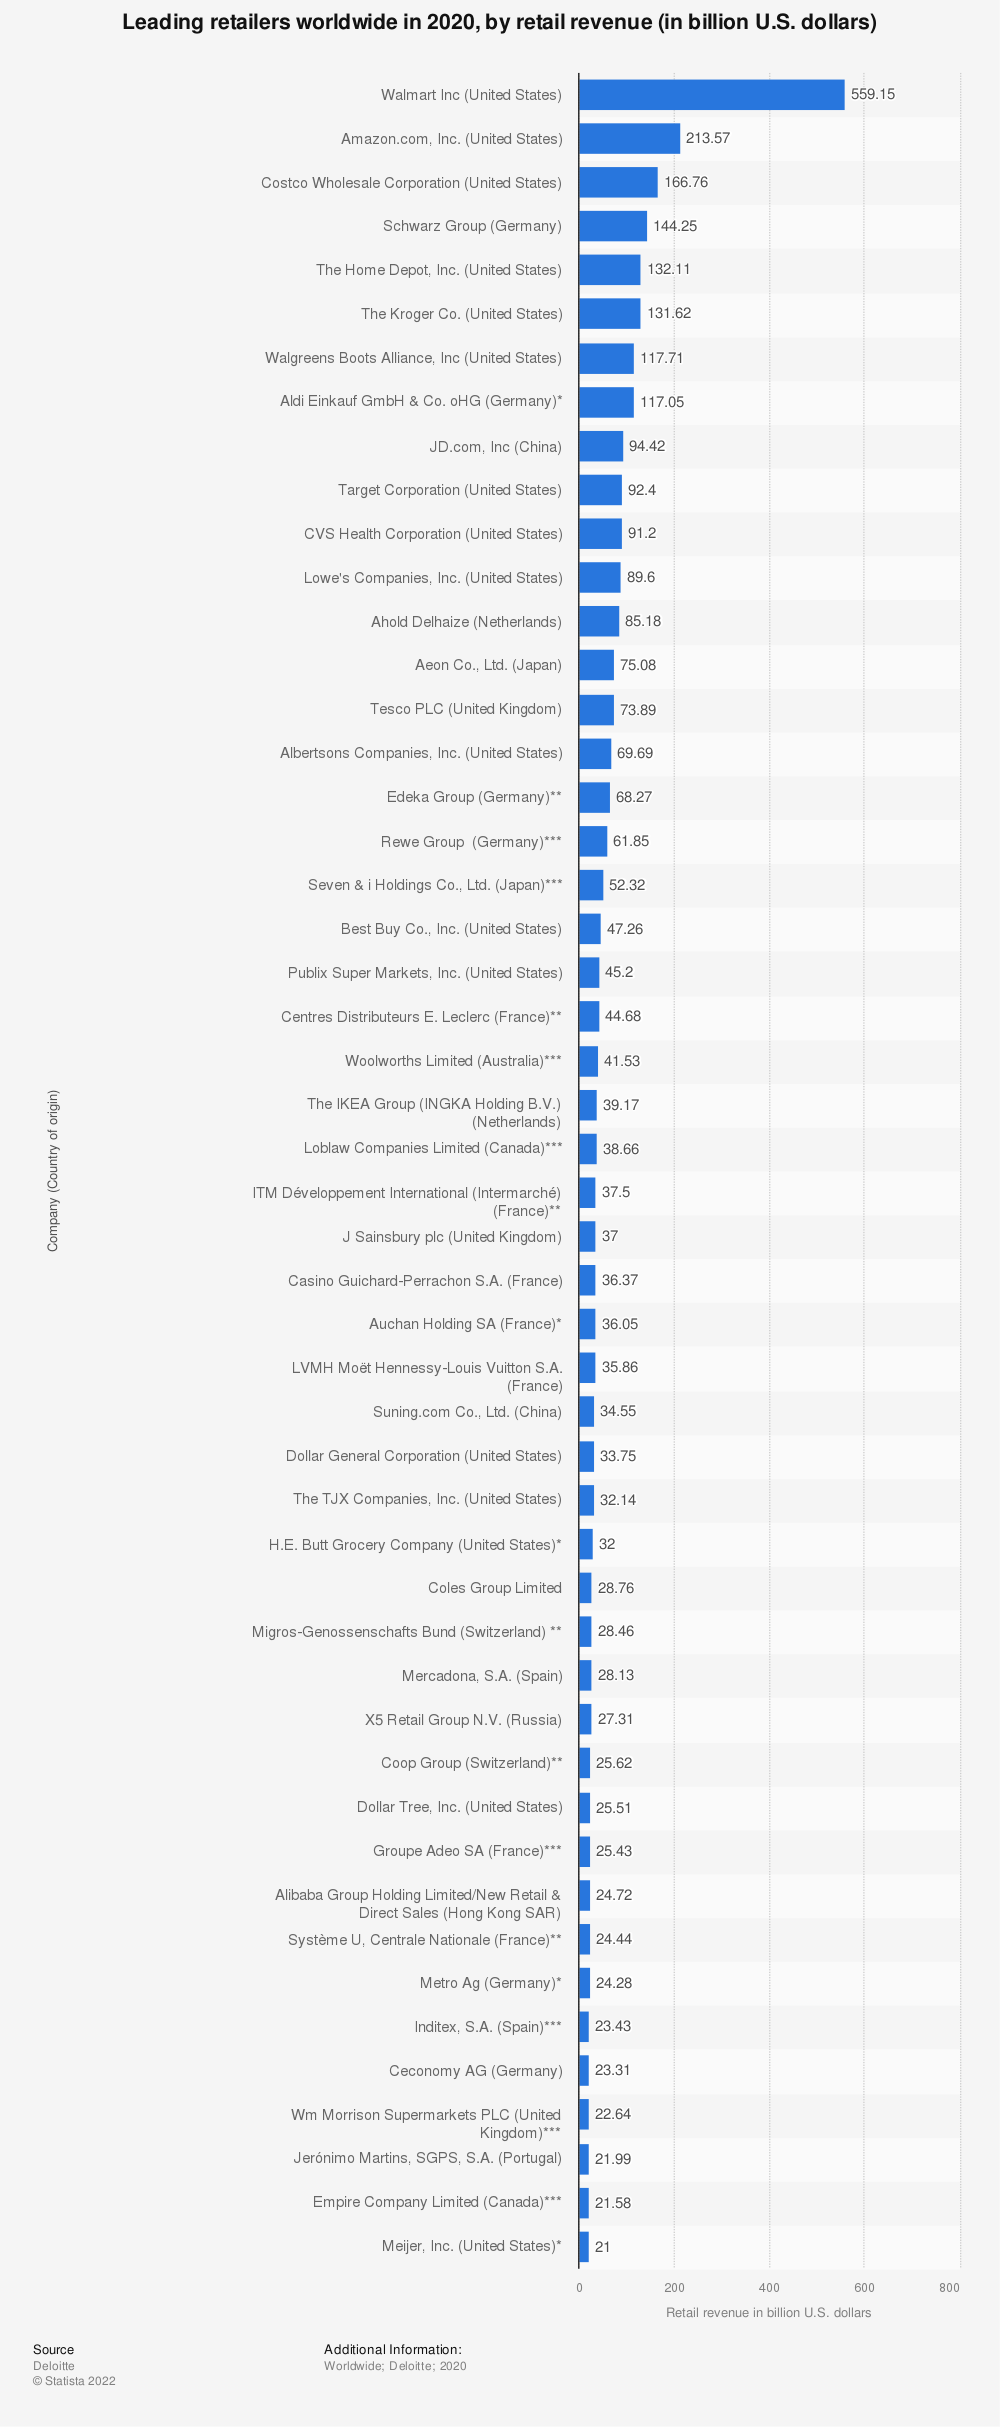 Statistic: Leading 50 retailers worldwide in 2014, based on retail revenue (in billion U.S. dollars) | Statista